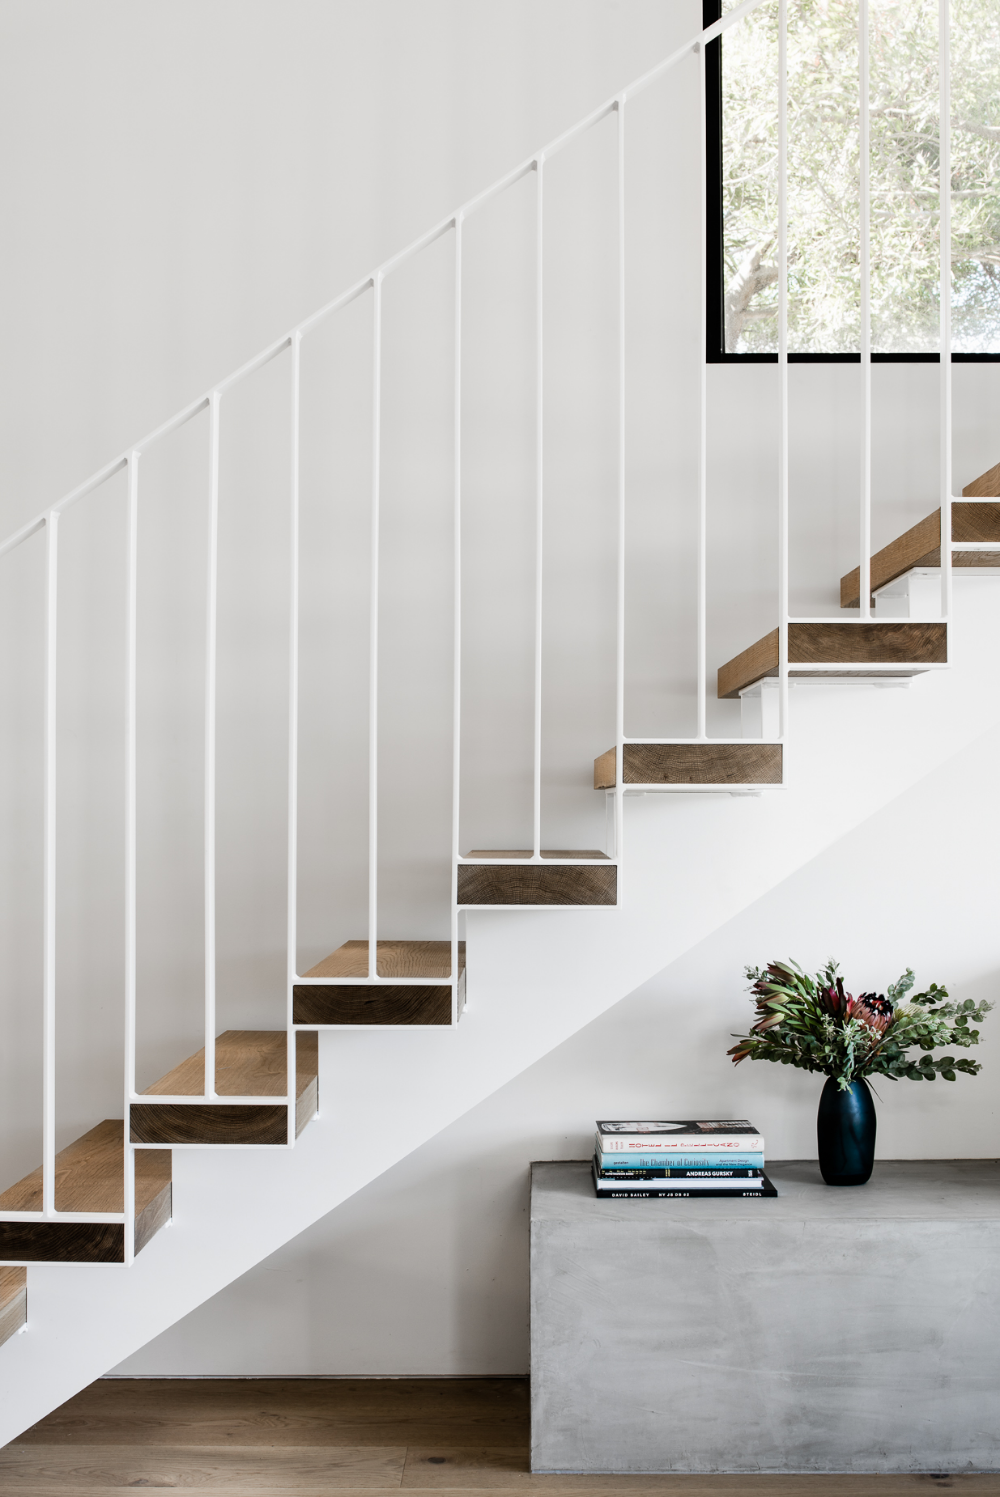 Friday Inspiration: A Staircase A Day